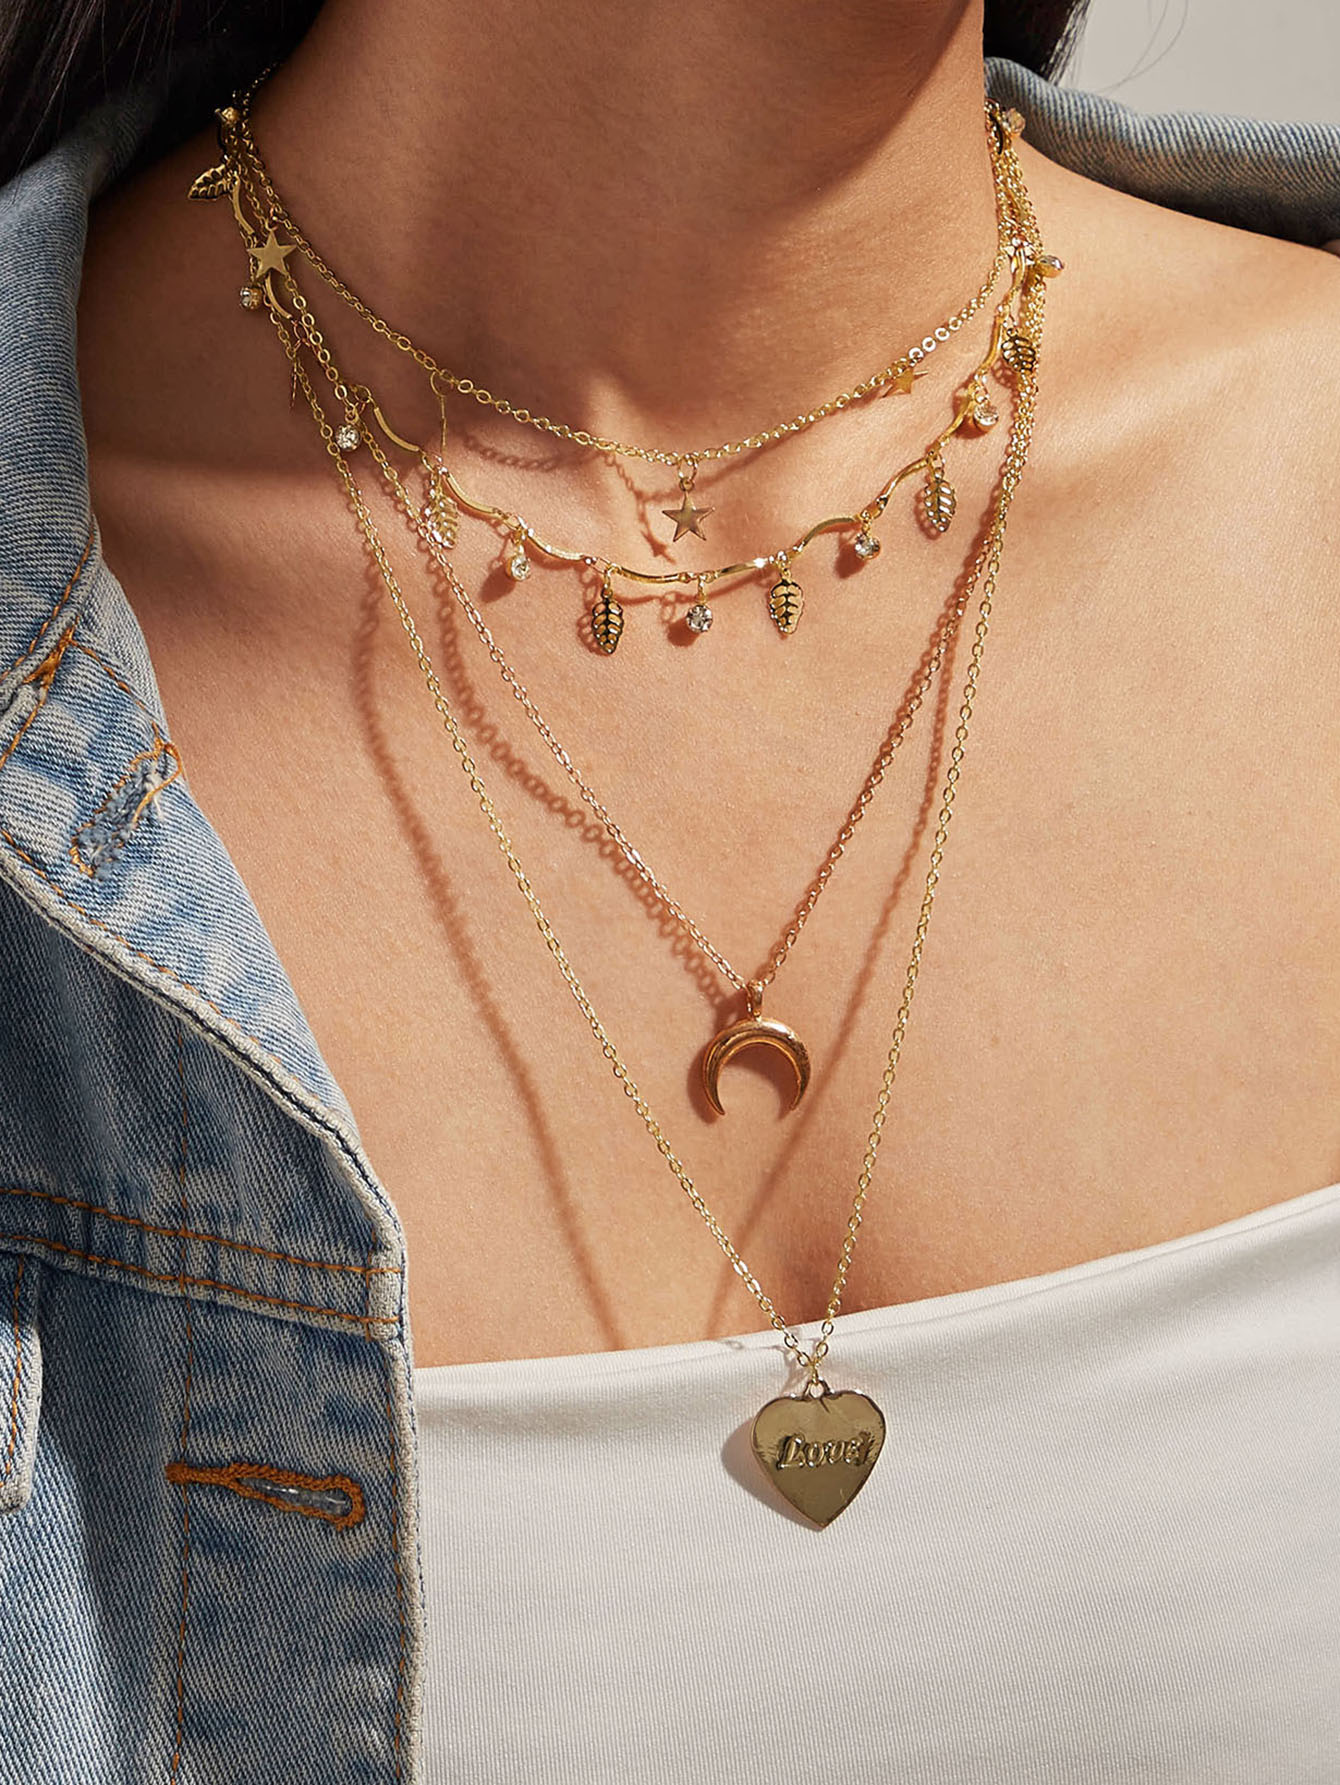 1pc Star & Heart Charm Layered Necklace thumbnail